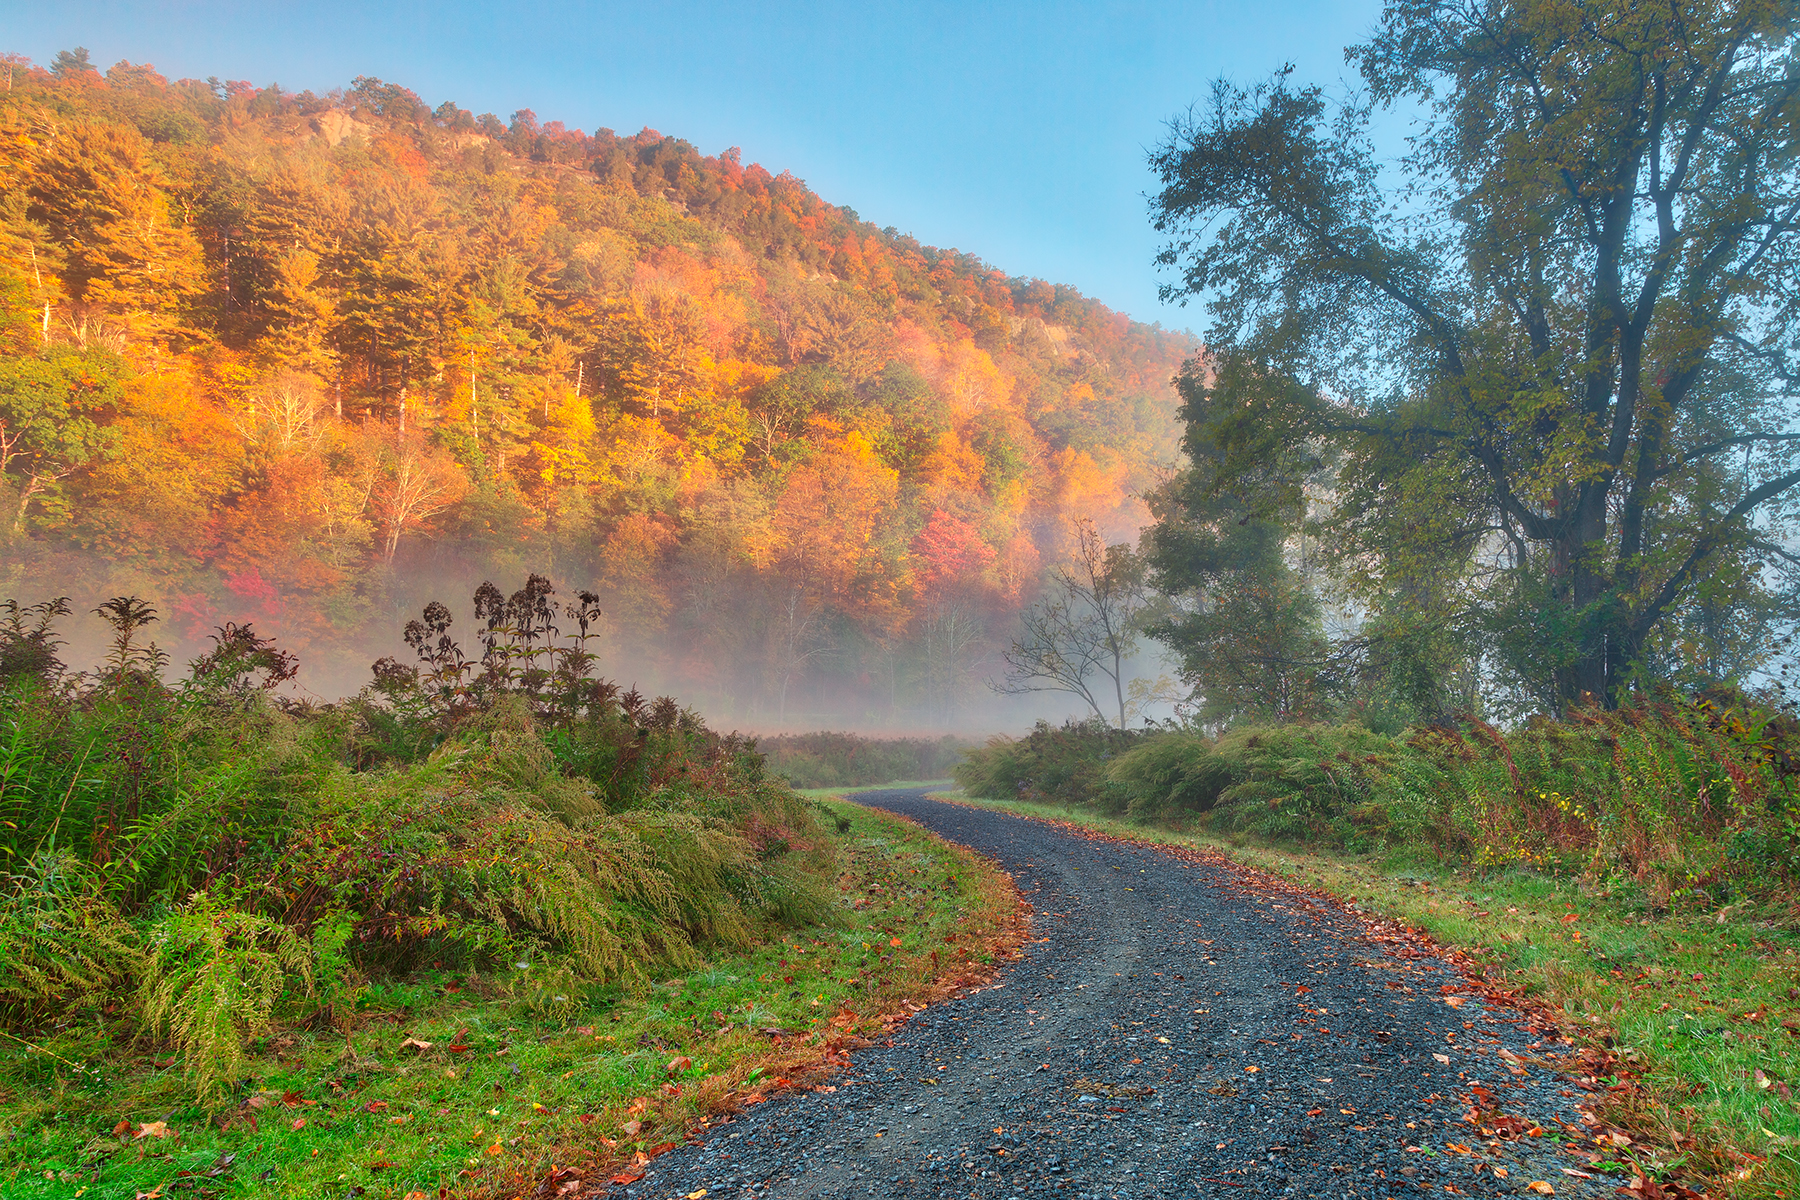 Misty autumn mcdade trail - hdr photo